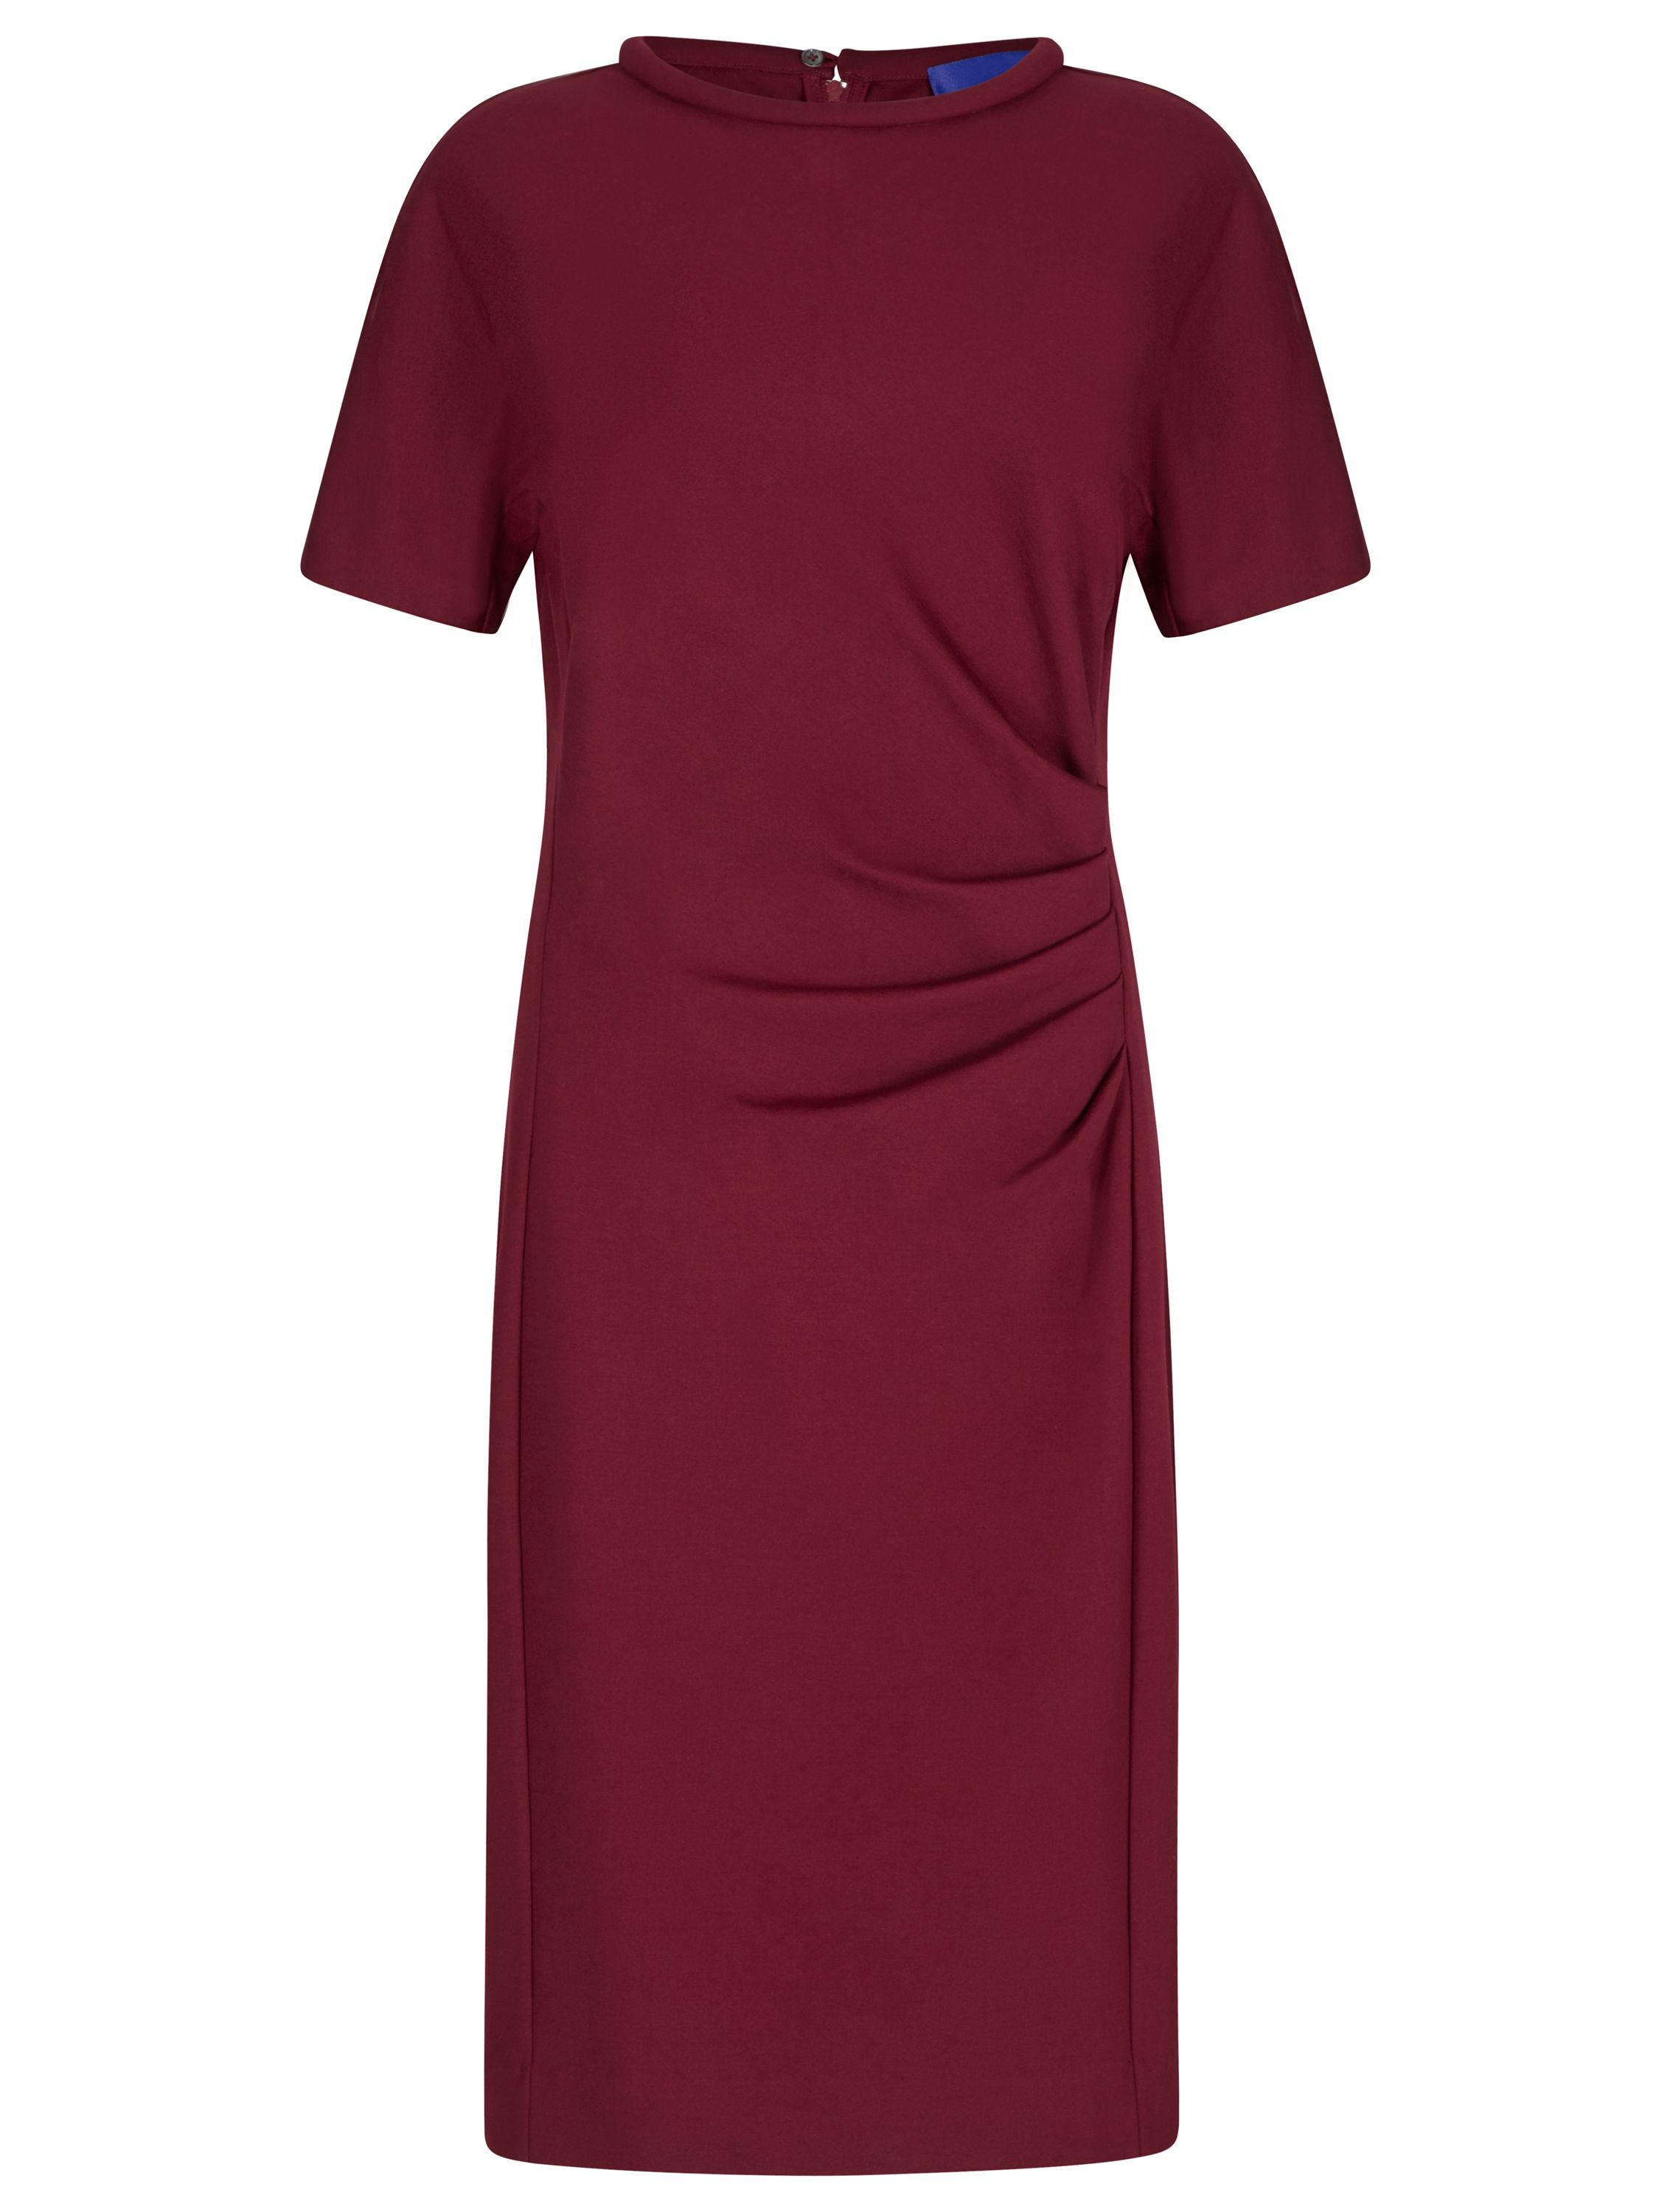 Winser London Miracle Short Sleeve Dress, Red